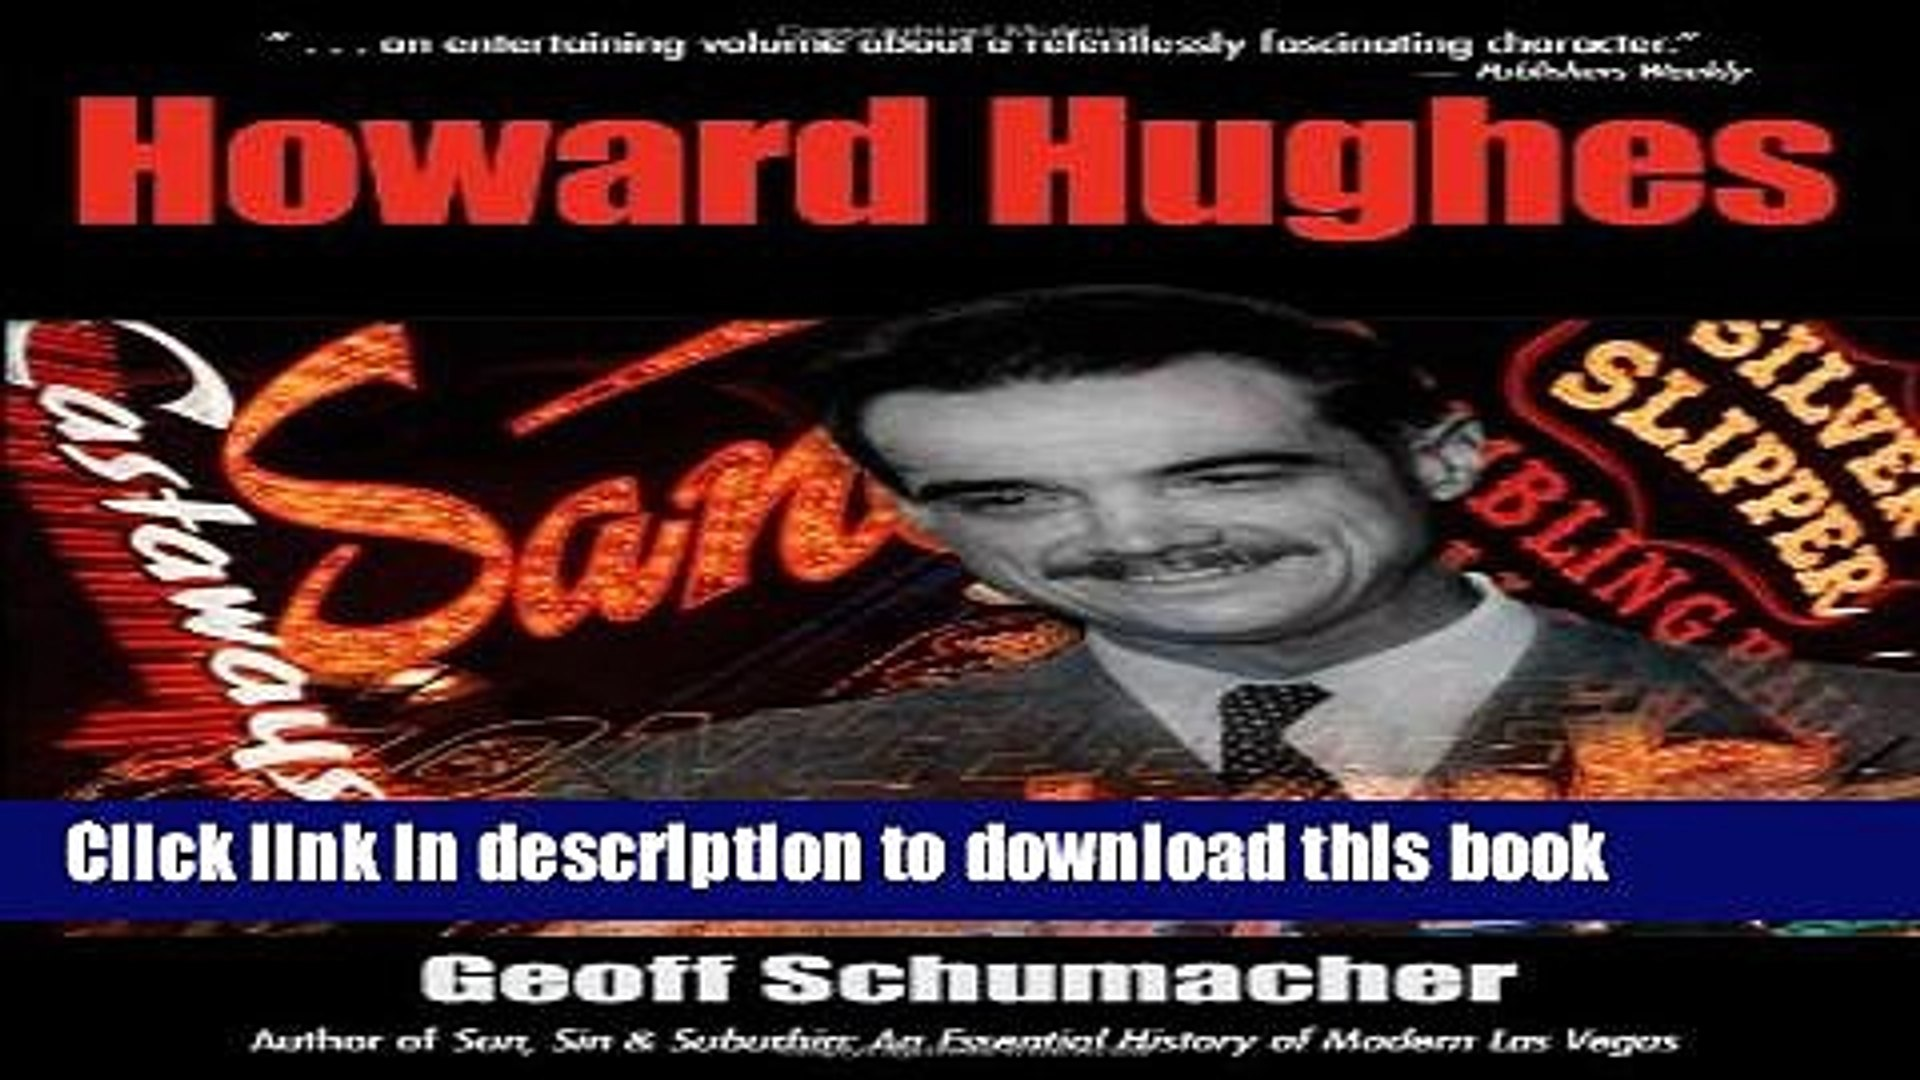 Next to Hughes Behind the Power and Tragic Downfall of Howard Hughes by His Closest Advisor